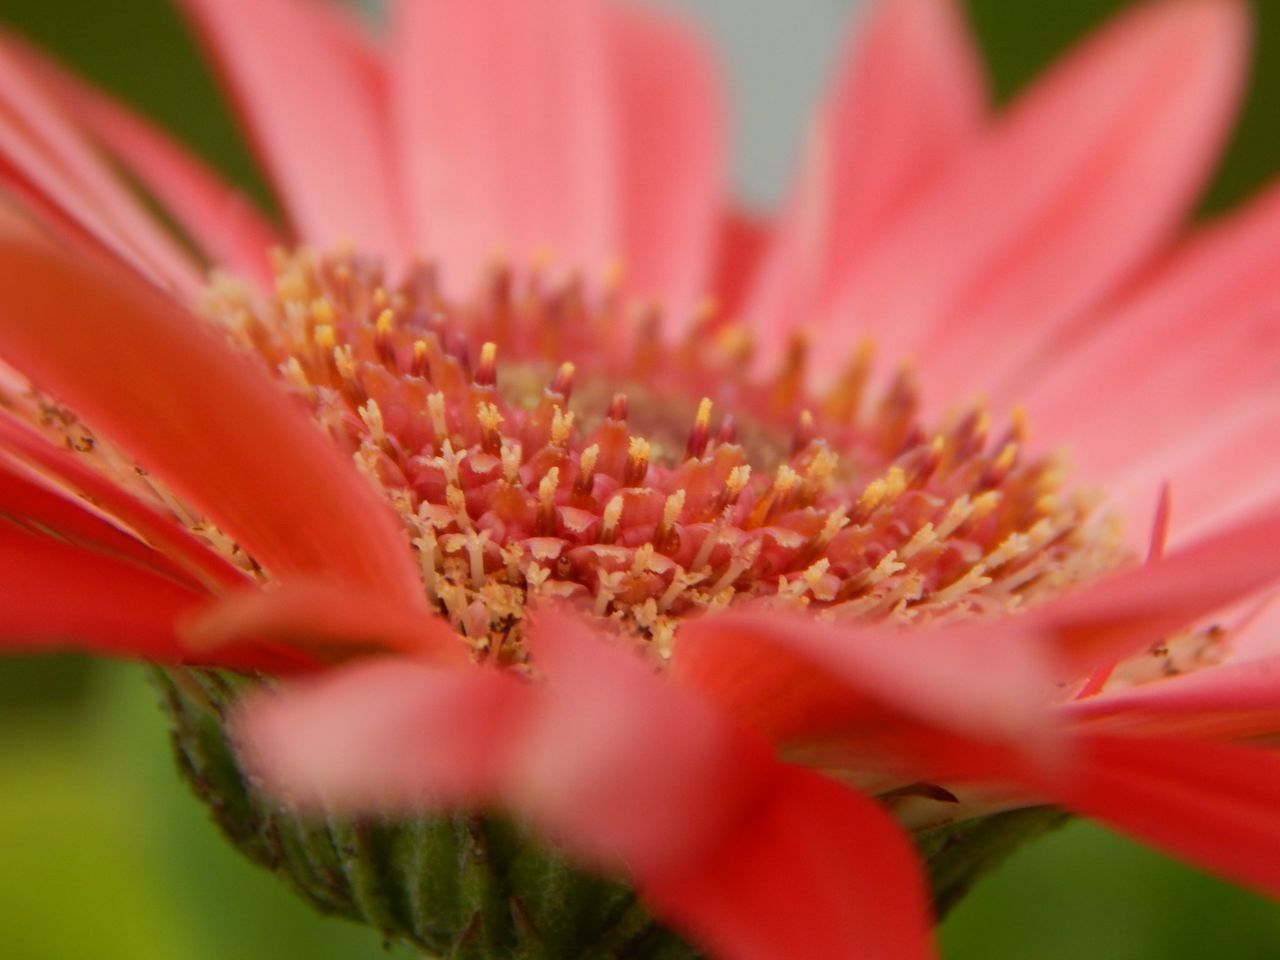 Close-Up Of Fresh Flower Blooming Outdoors